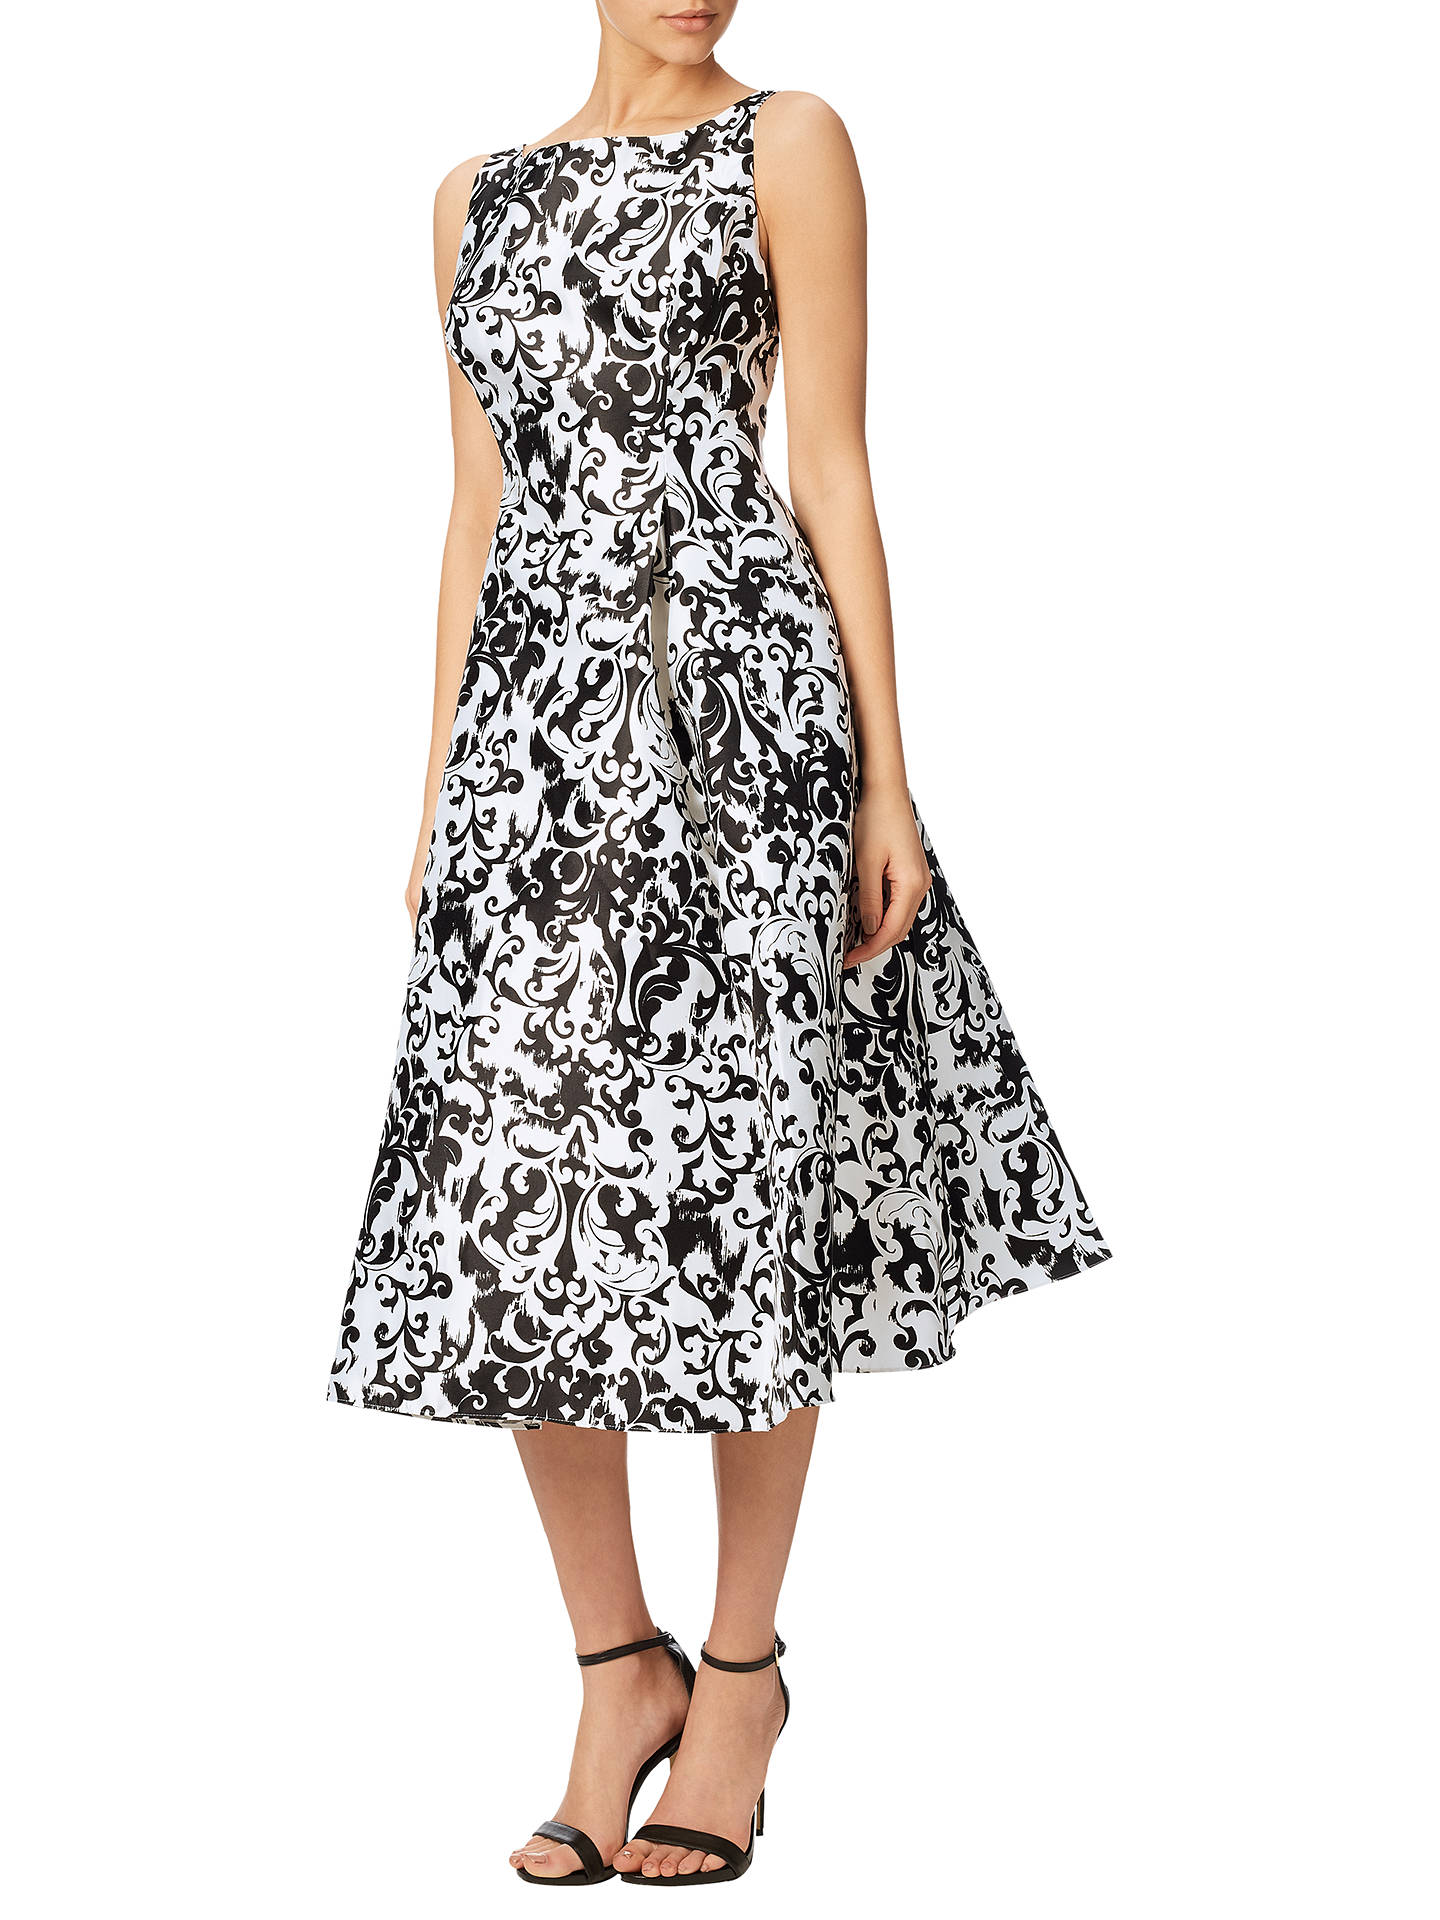 1fcf15b64 Buy Adrianna Papell Sleeveless Printed Mikado Party Dress